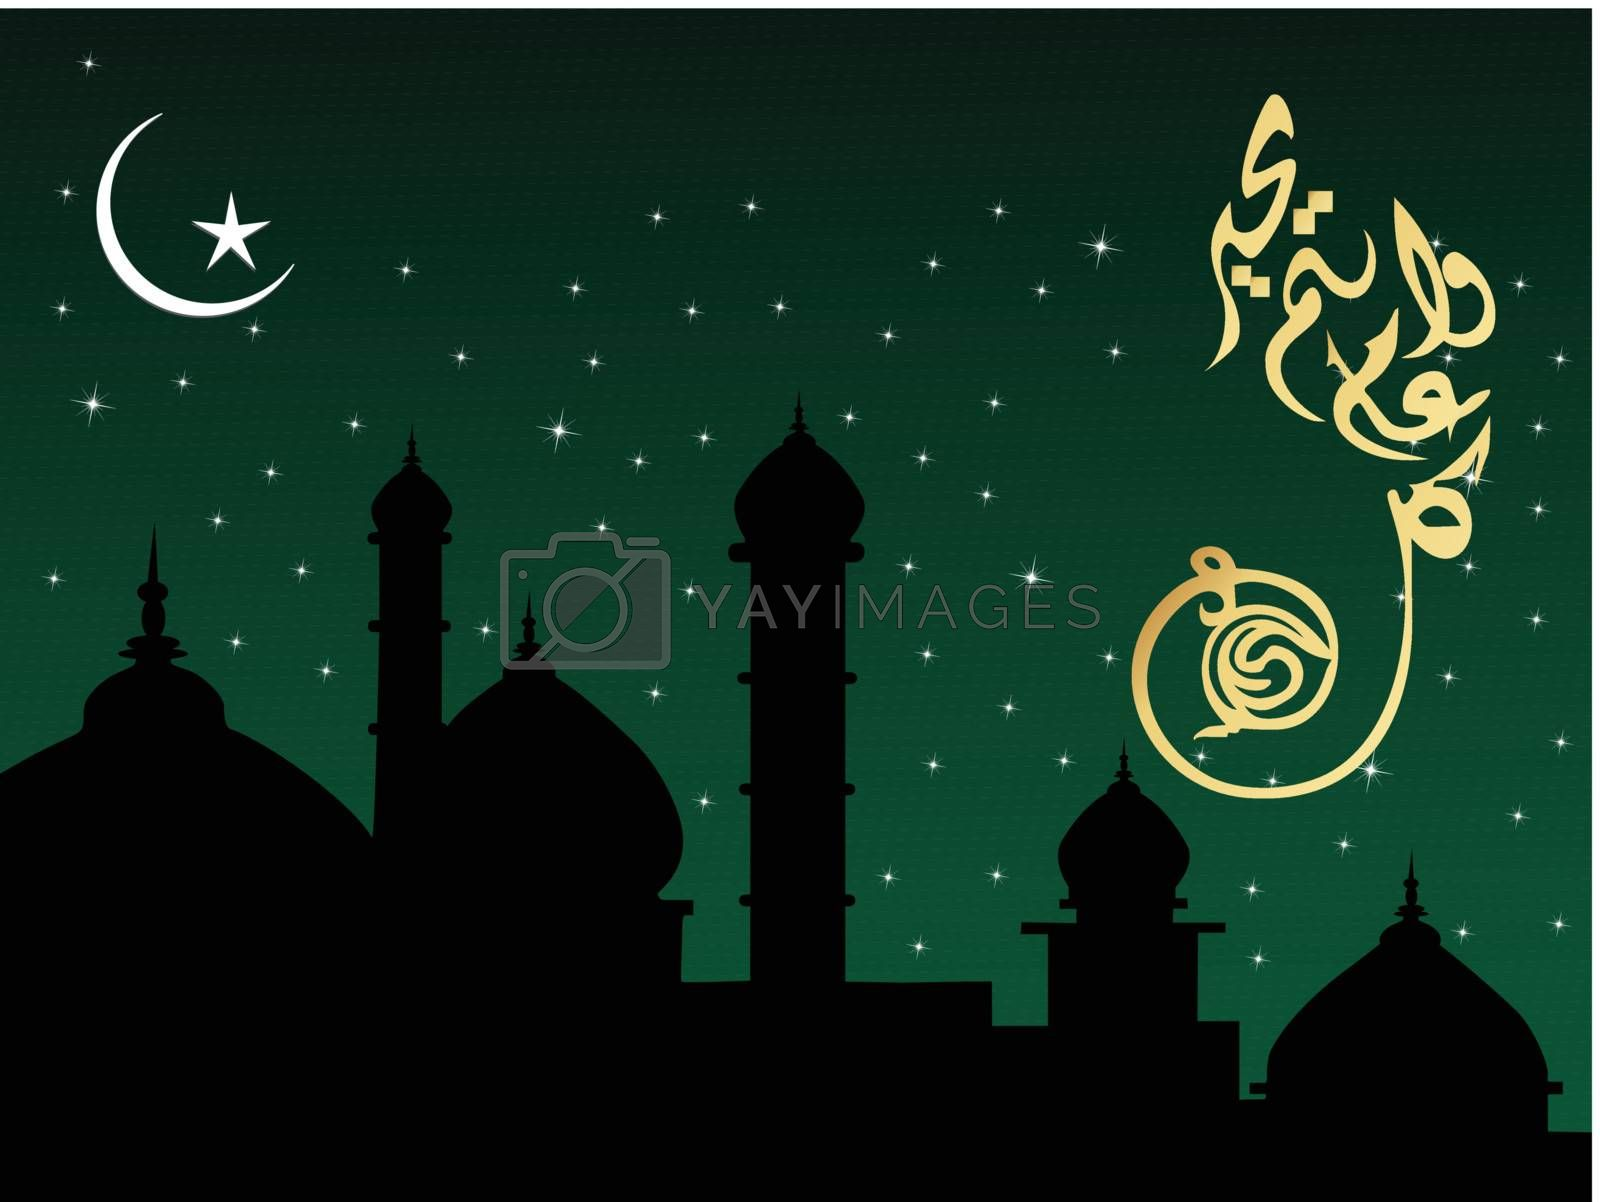 abstract frame with creative islamic background, design56